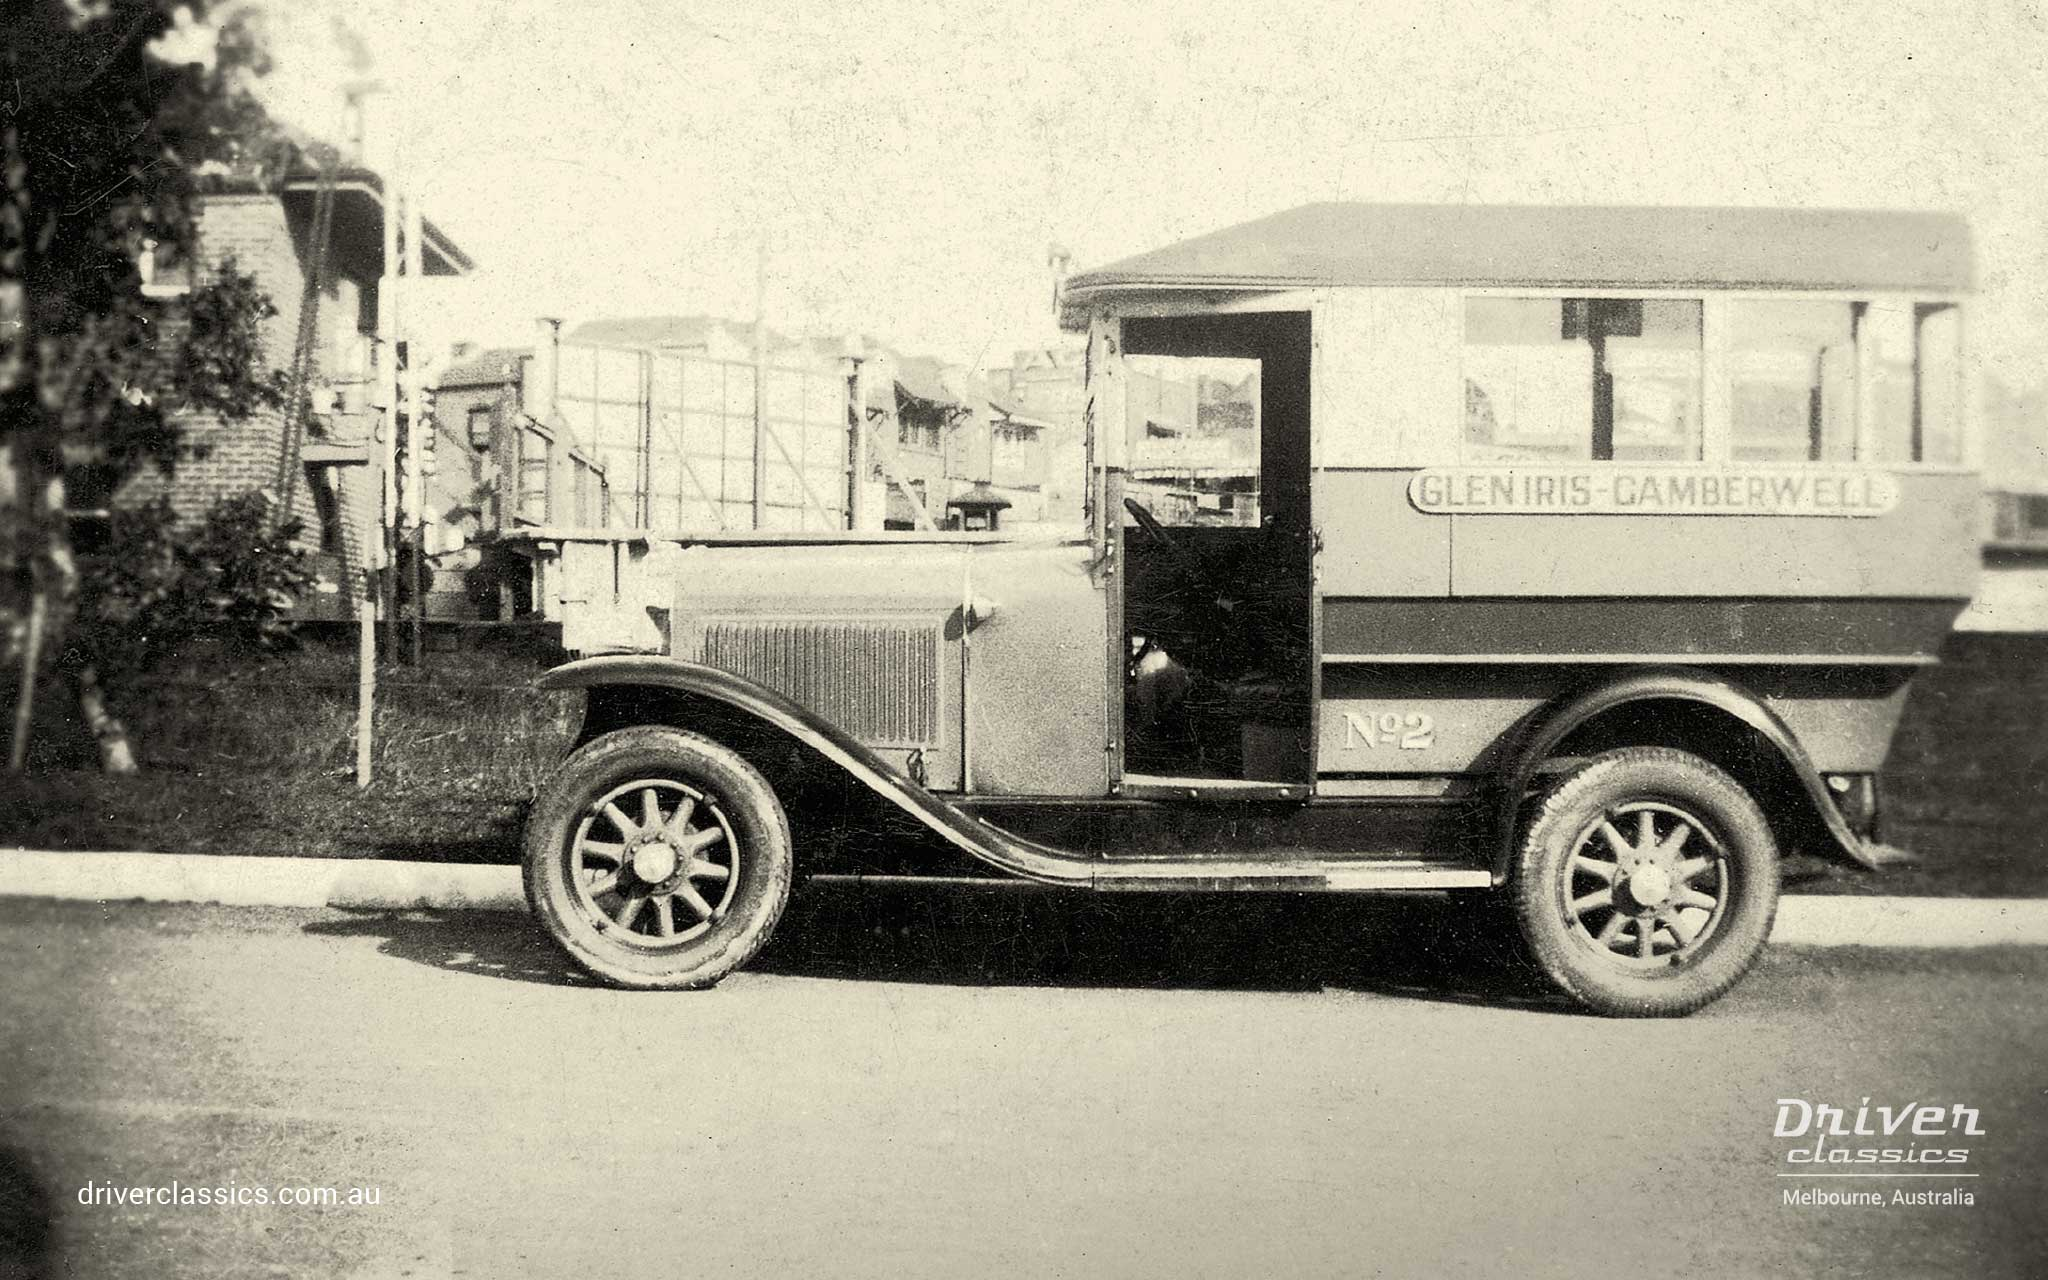 Pontiac 29-6 bus cab. The original Driver Brothers cab #2 at Glen Iris Station, Melbourne VIC, circa early 1930s.